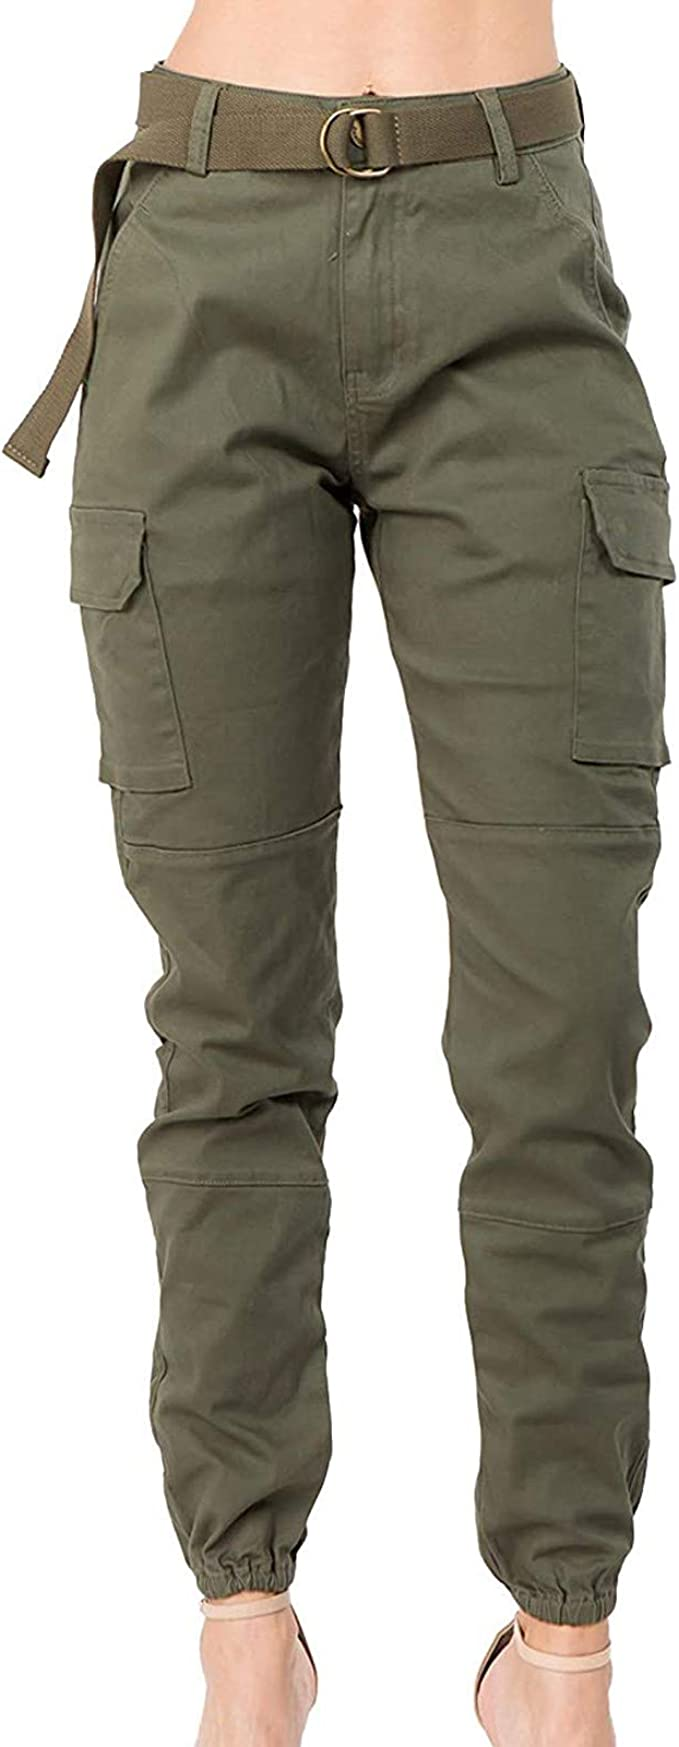 Women Cargo Skinny Tracksuit Bottoms Military Army Combat Trousers Joggers Pants